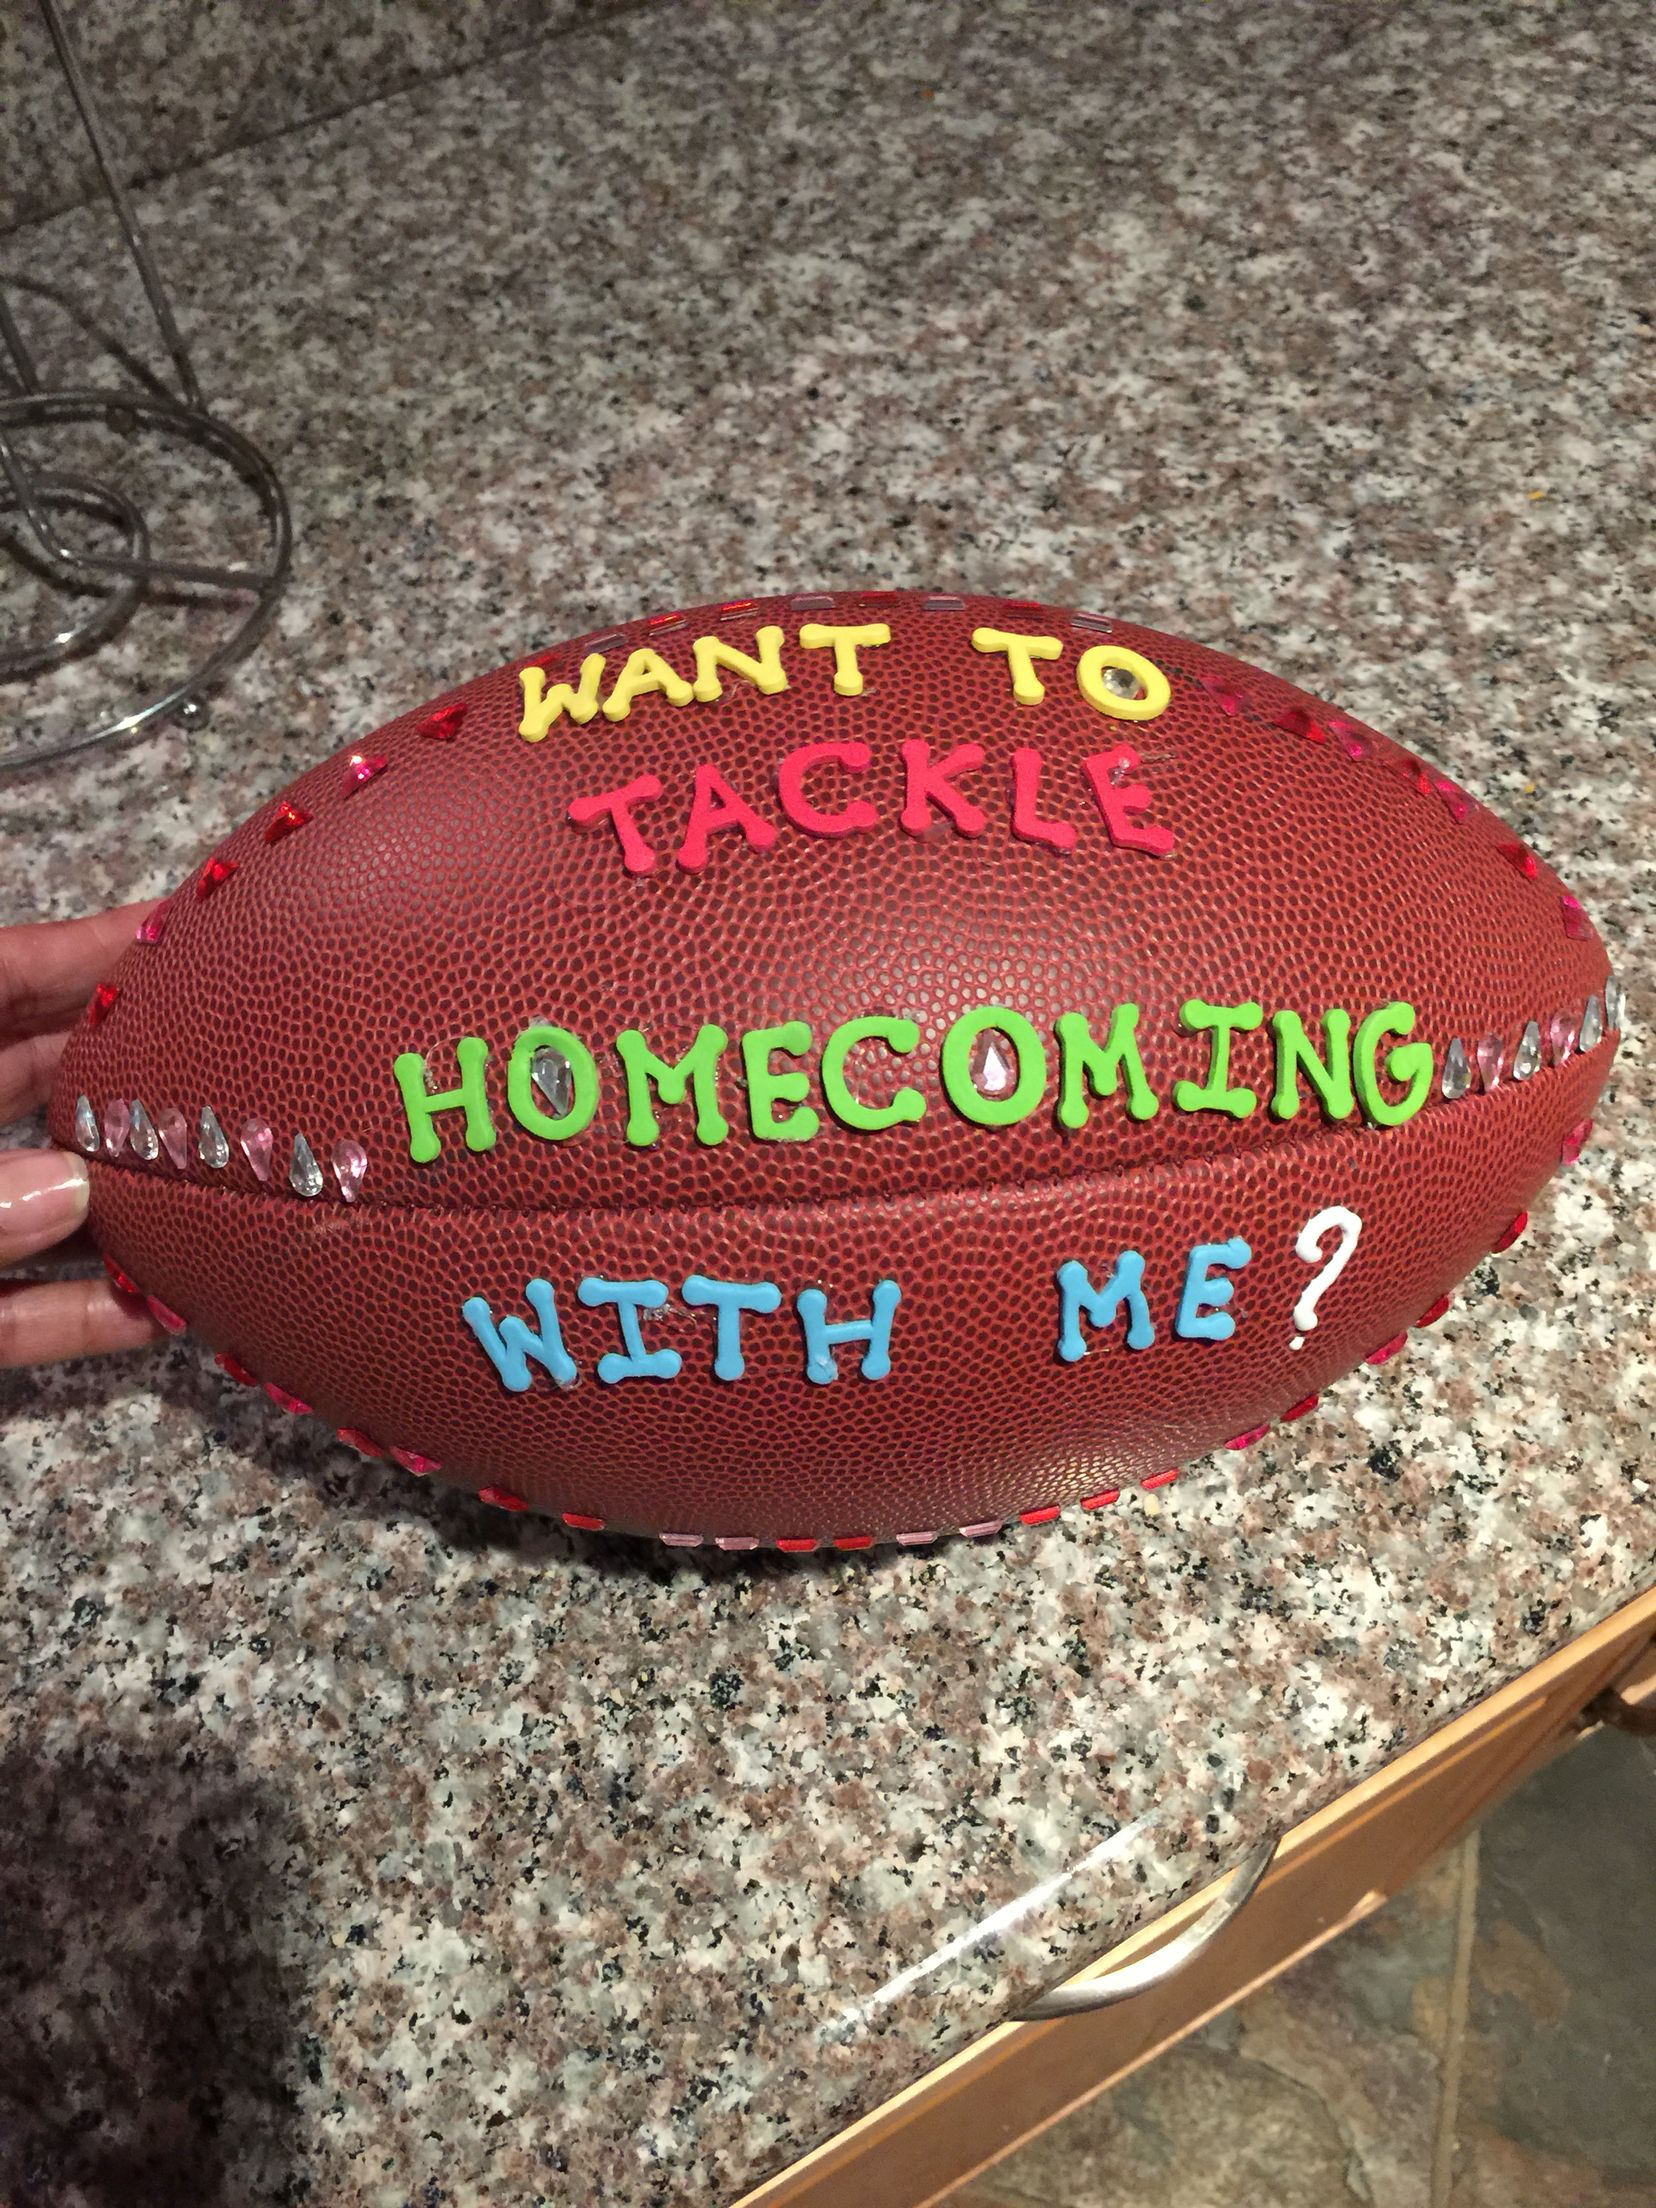 Cute idea to ask someone to homecoming